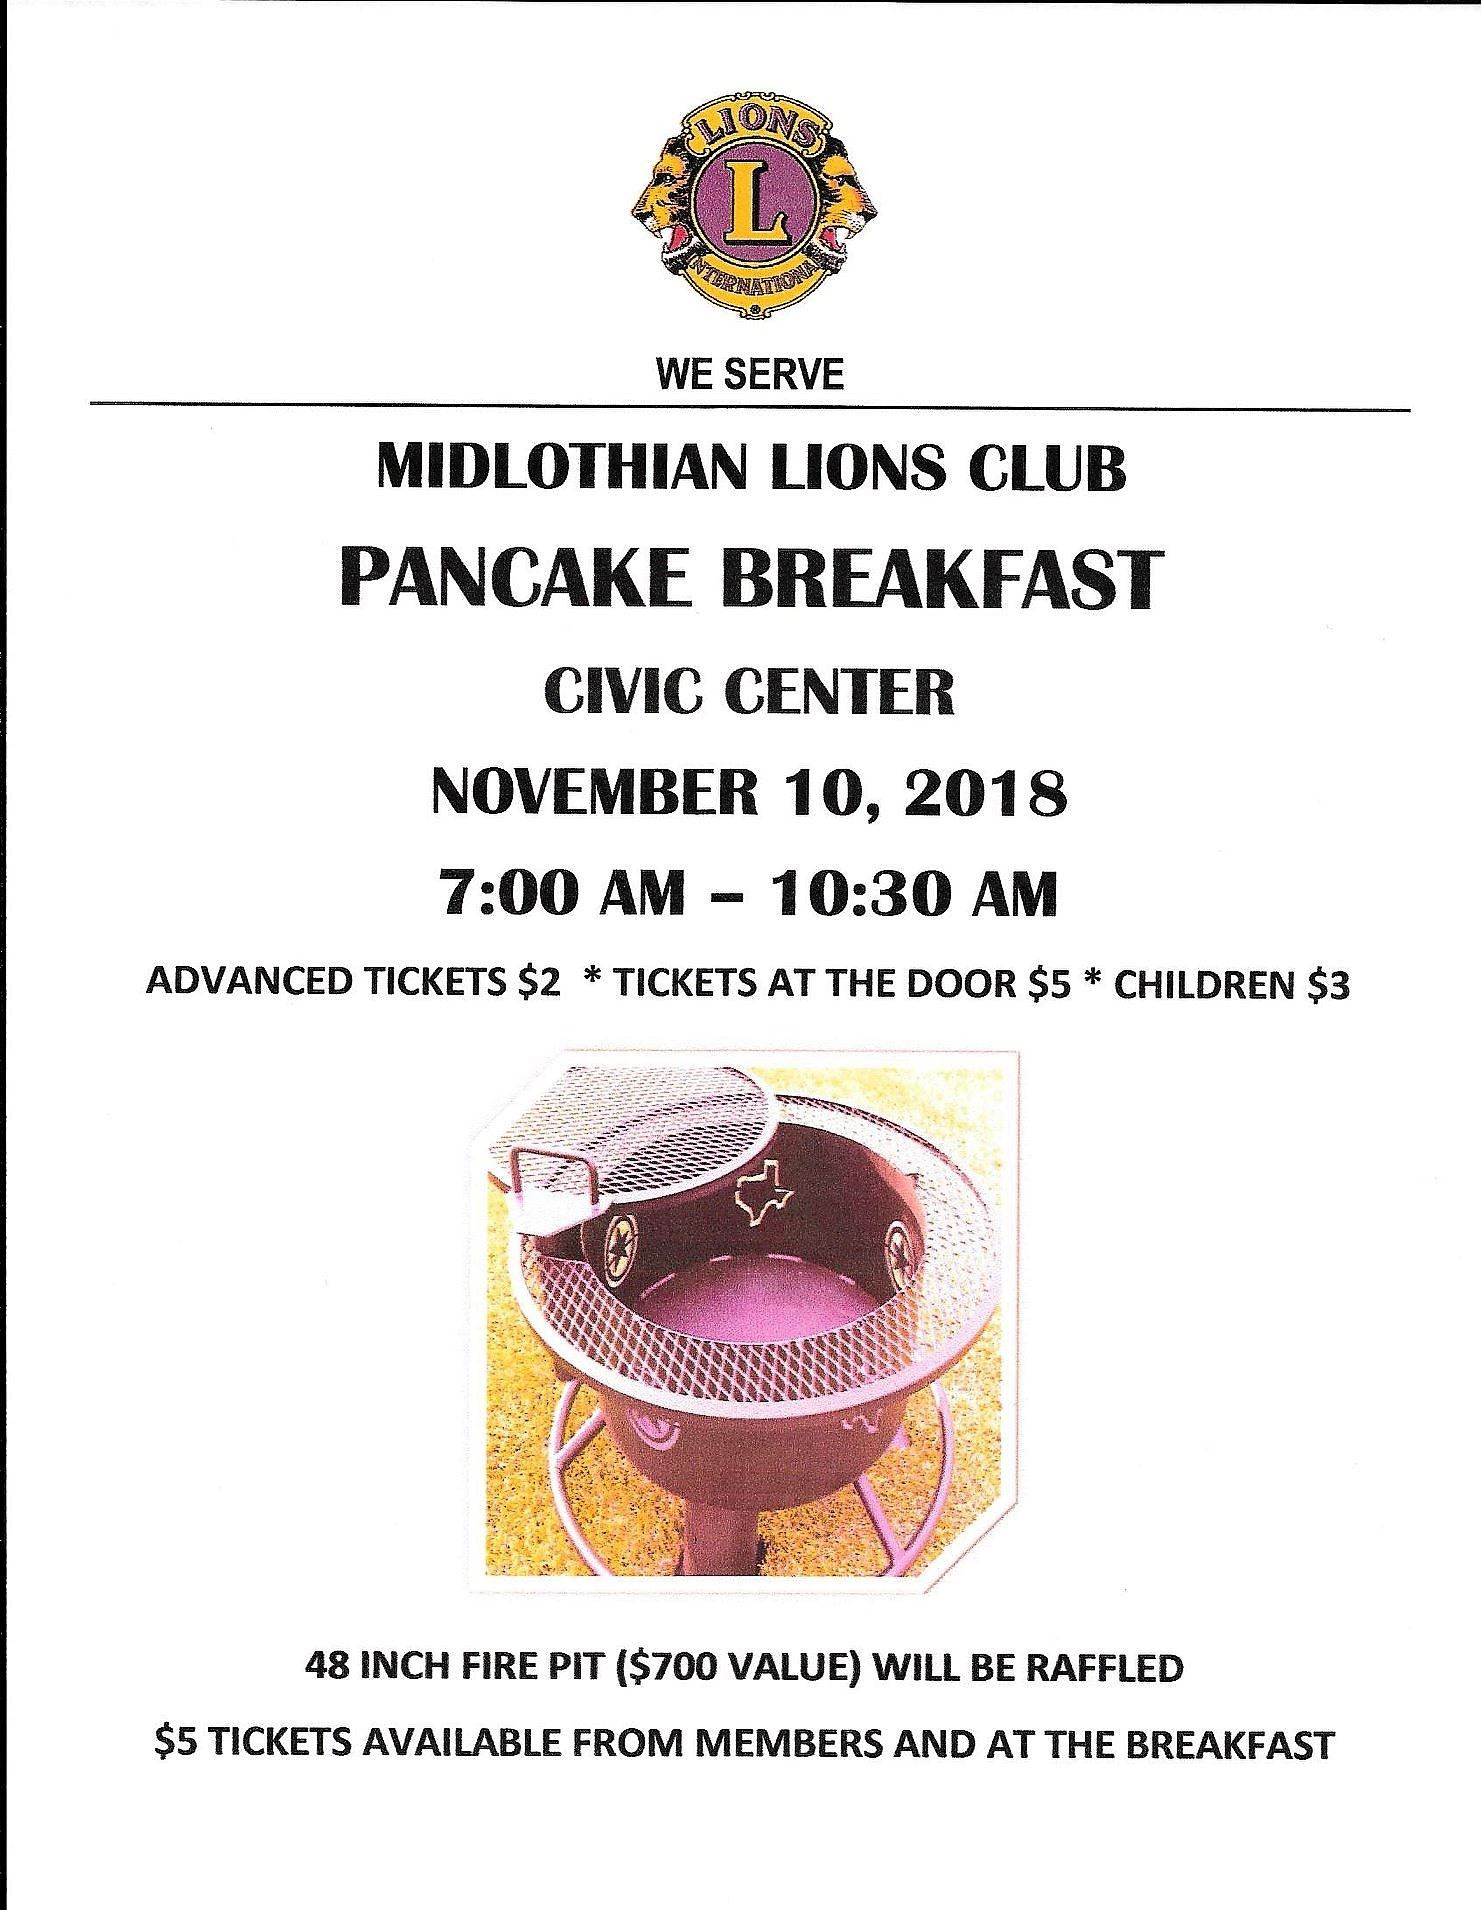 Lions Club Pancake Breakfast Flyer